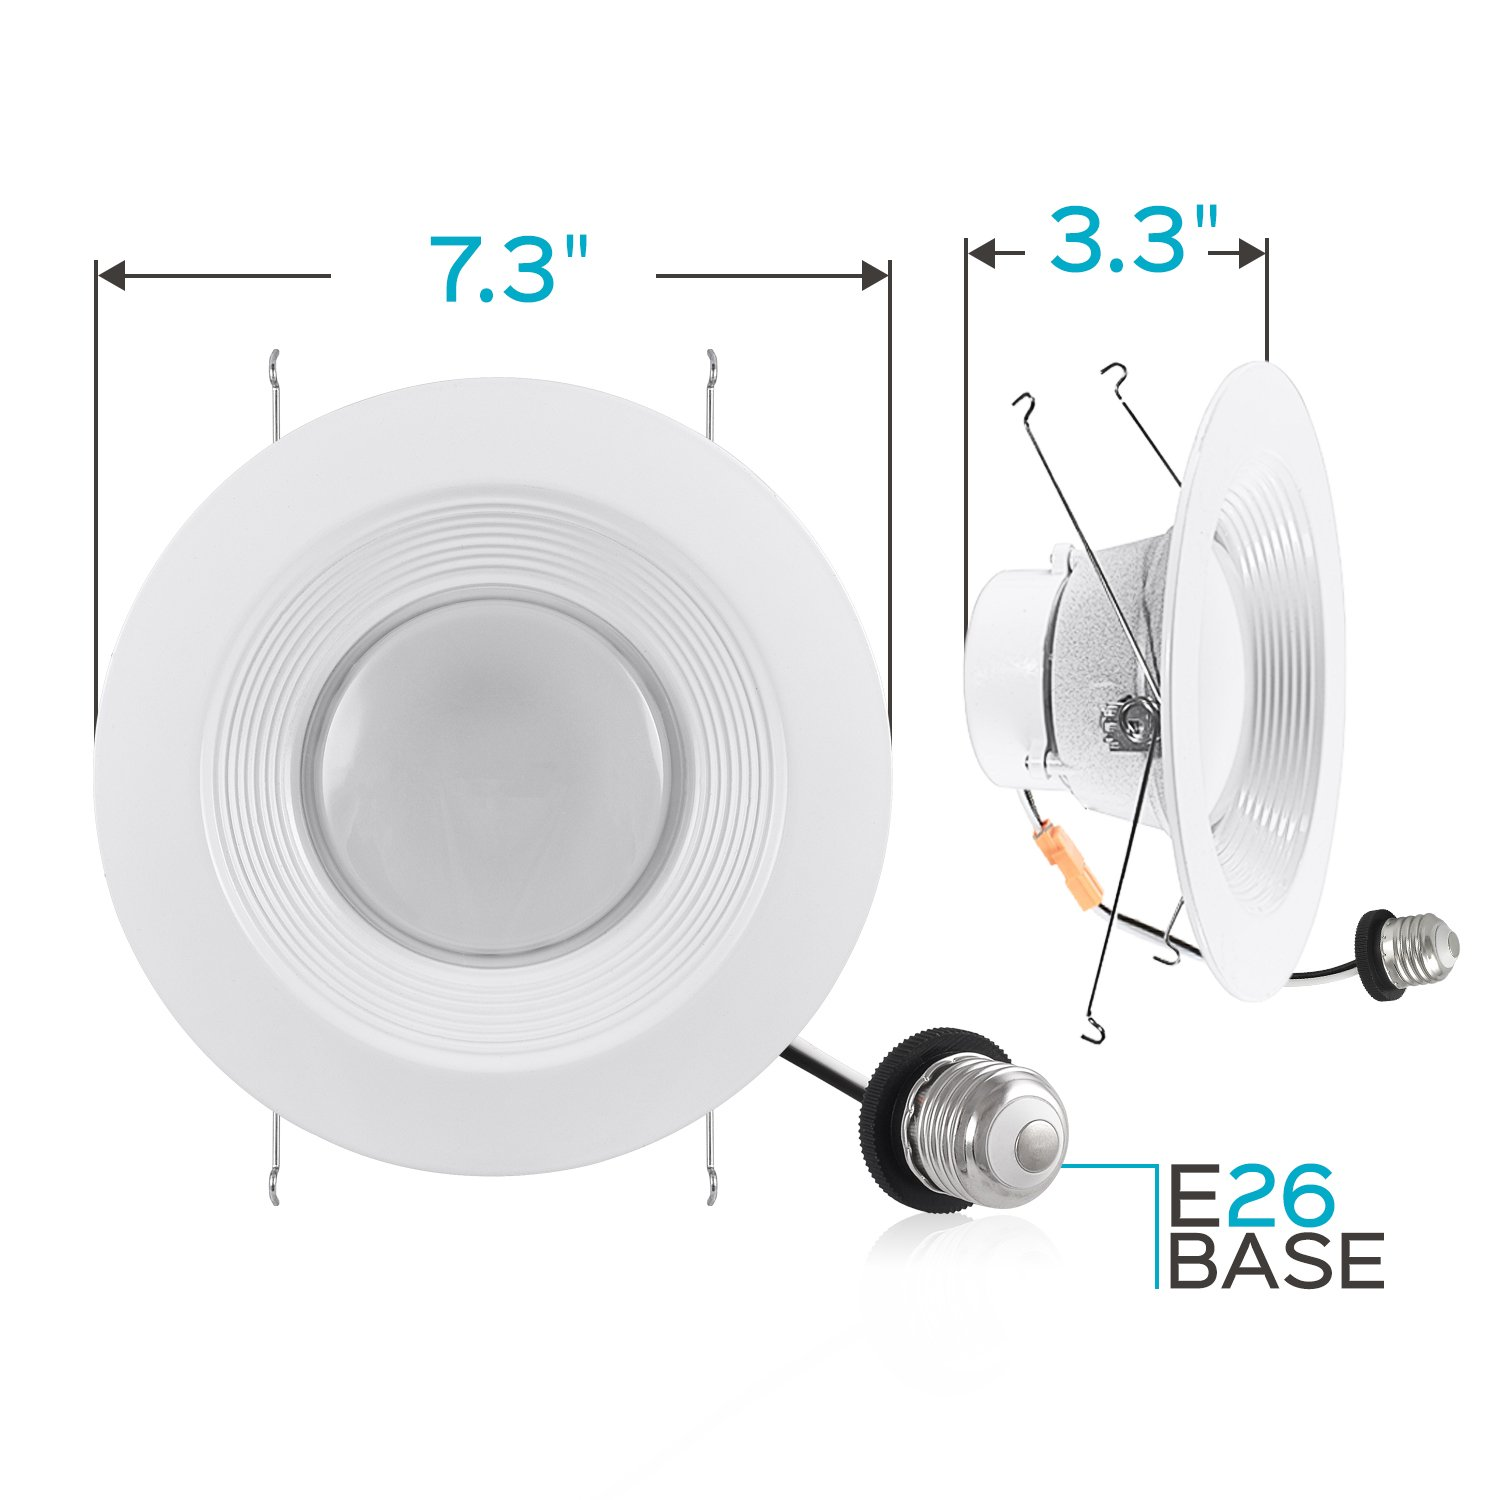 Luxrite 5/6 Inch LED Recessed Light, 15W (120W Equivalent), 5000K Bright White, 1300lm, Dimmable, Retrofit LED Can Light, Energy Star & UL, Damp Rated - Perfect for Kitchen, Bathroom, Office (4 Pack) by Luxrite (Image #5)